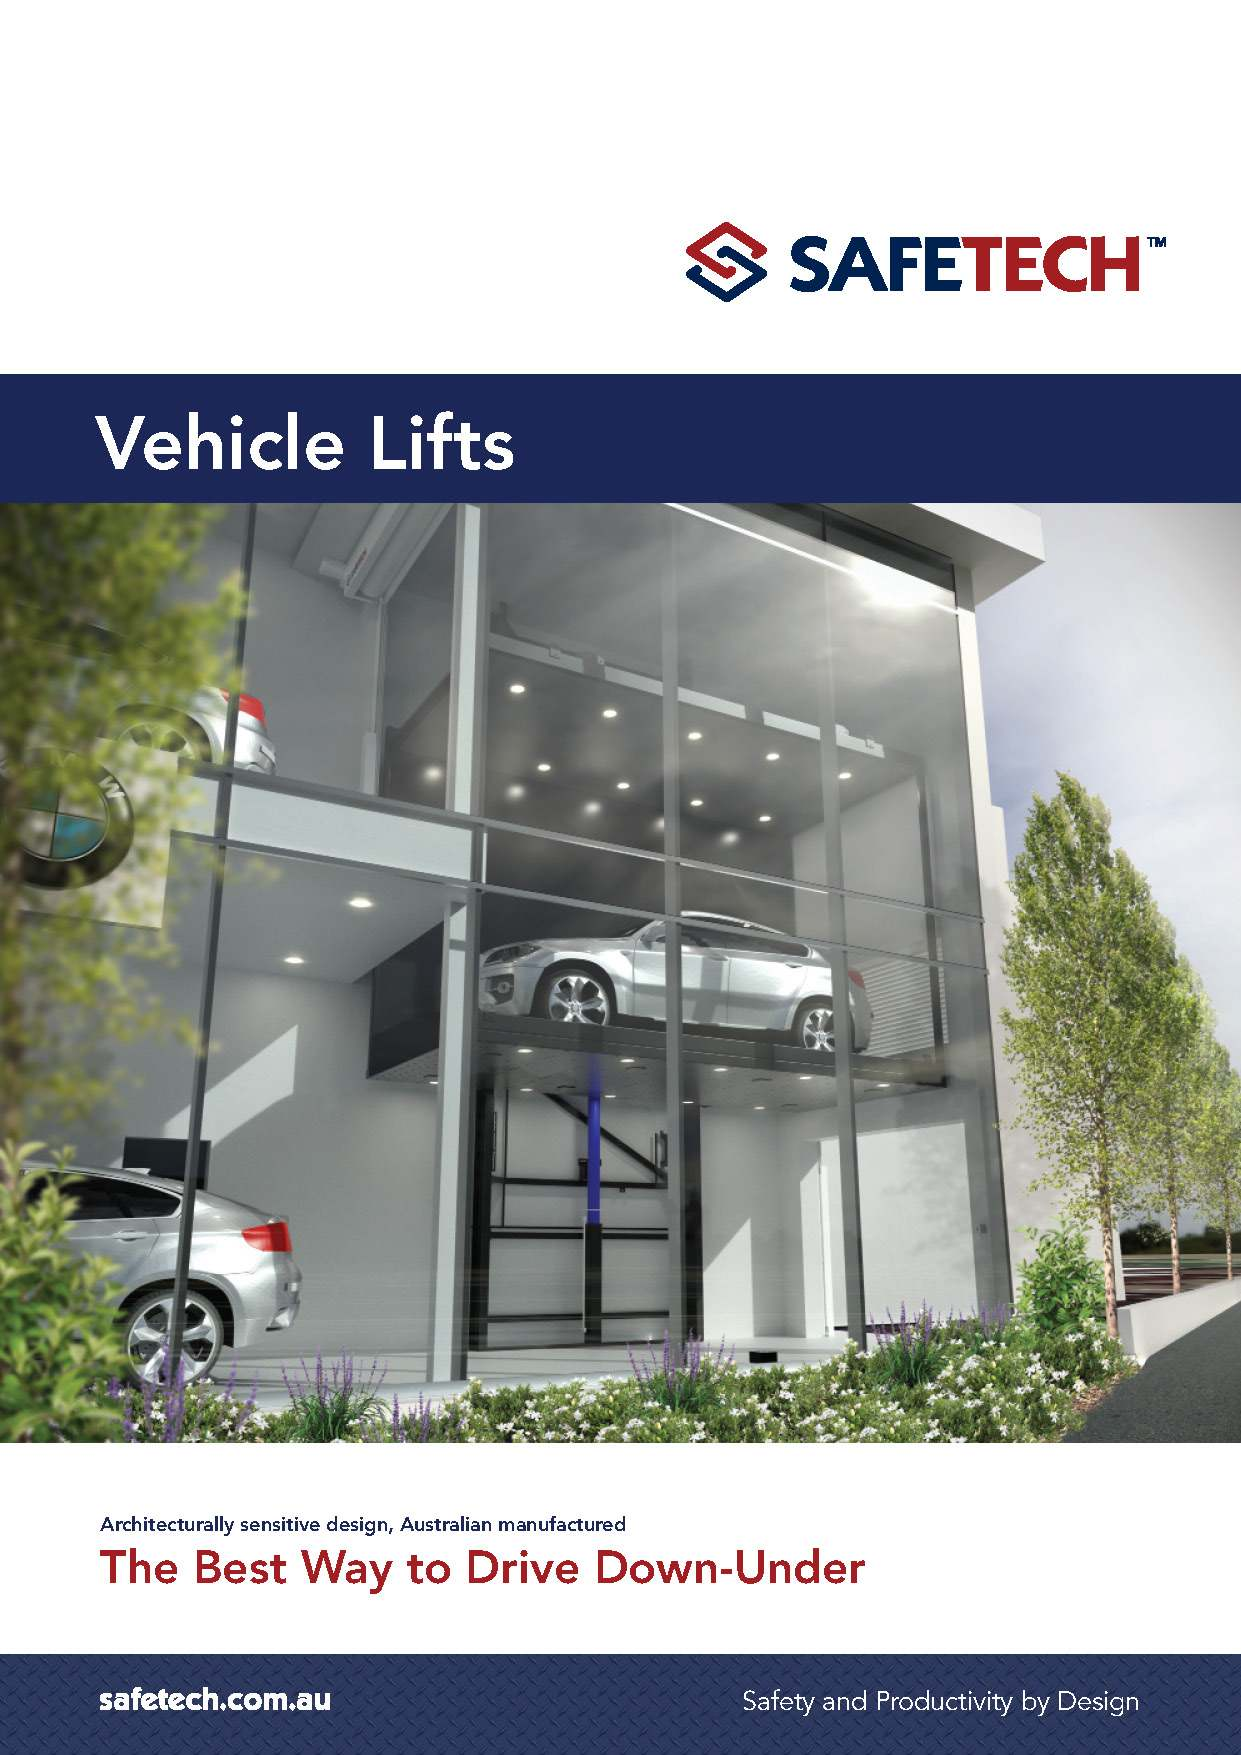 Safetech-VehicleLifts-A4_v1.05_Page_01